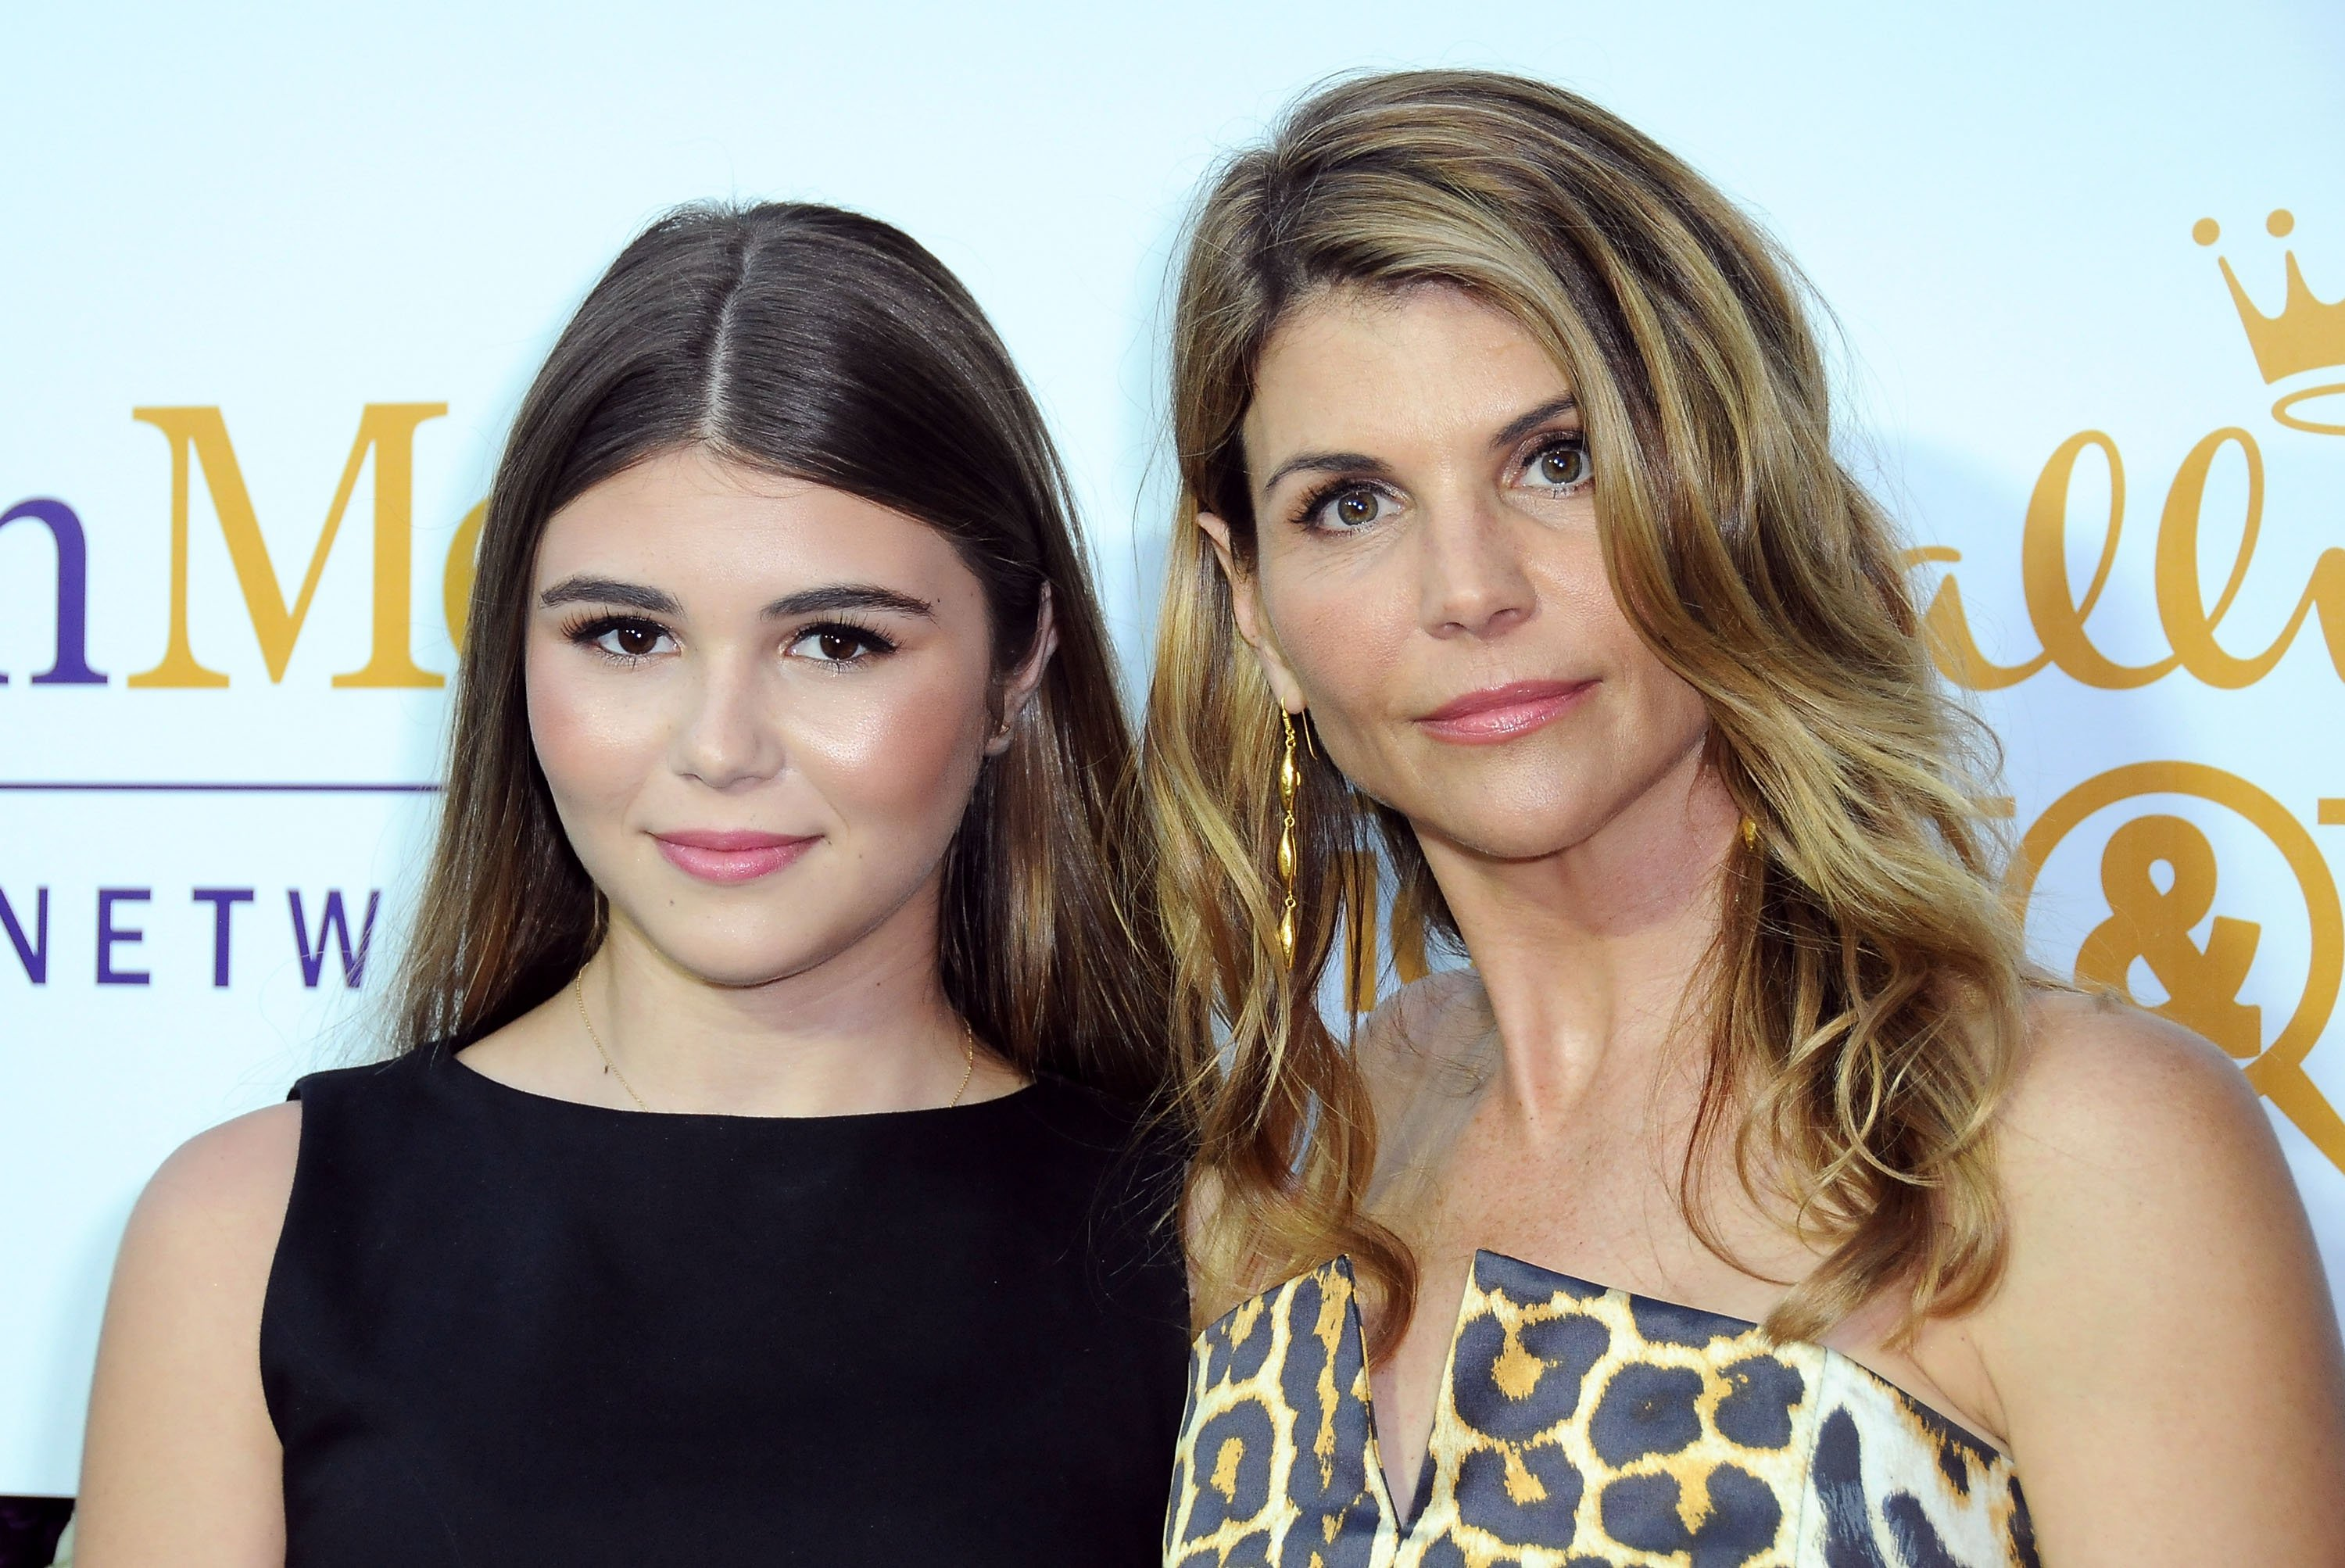 Lori Loughlin (R) and daughter Olivia Jade Giannulli attend the 2015 Summer TCA Tour - Hallmark Channel and Hallmark Movies And Mysteries on July 29, 2015 in Beverly Hills, California.   Source: Getty